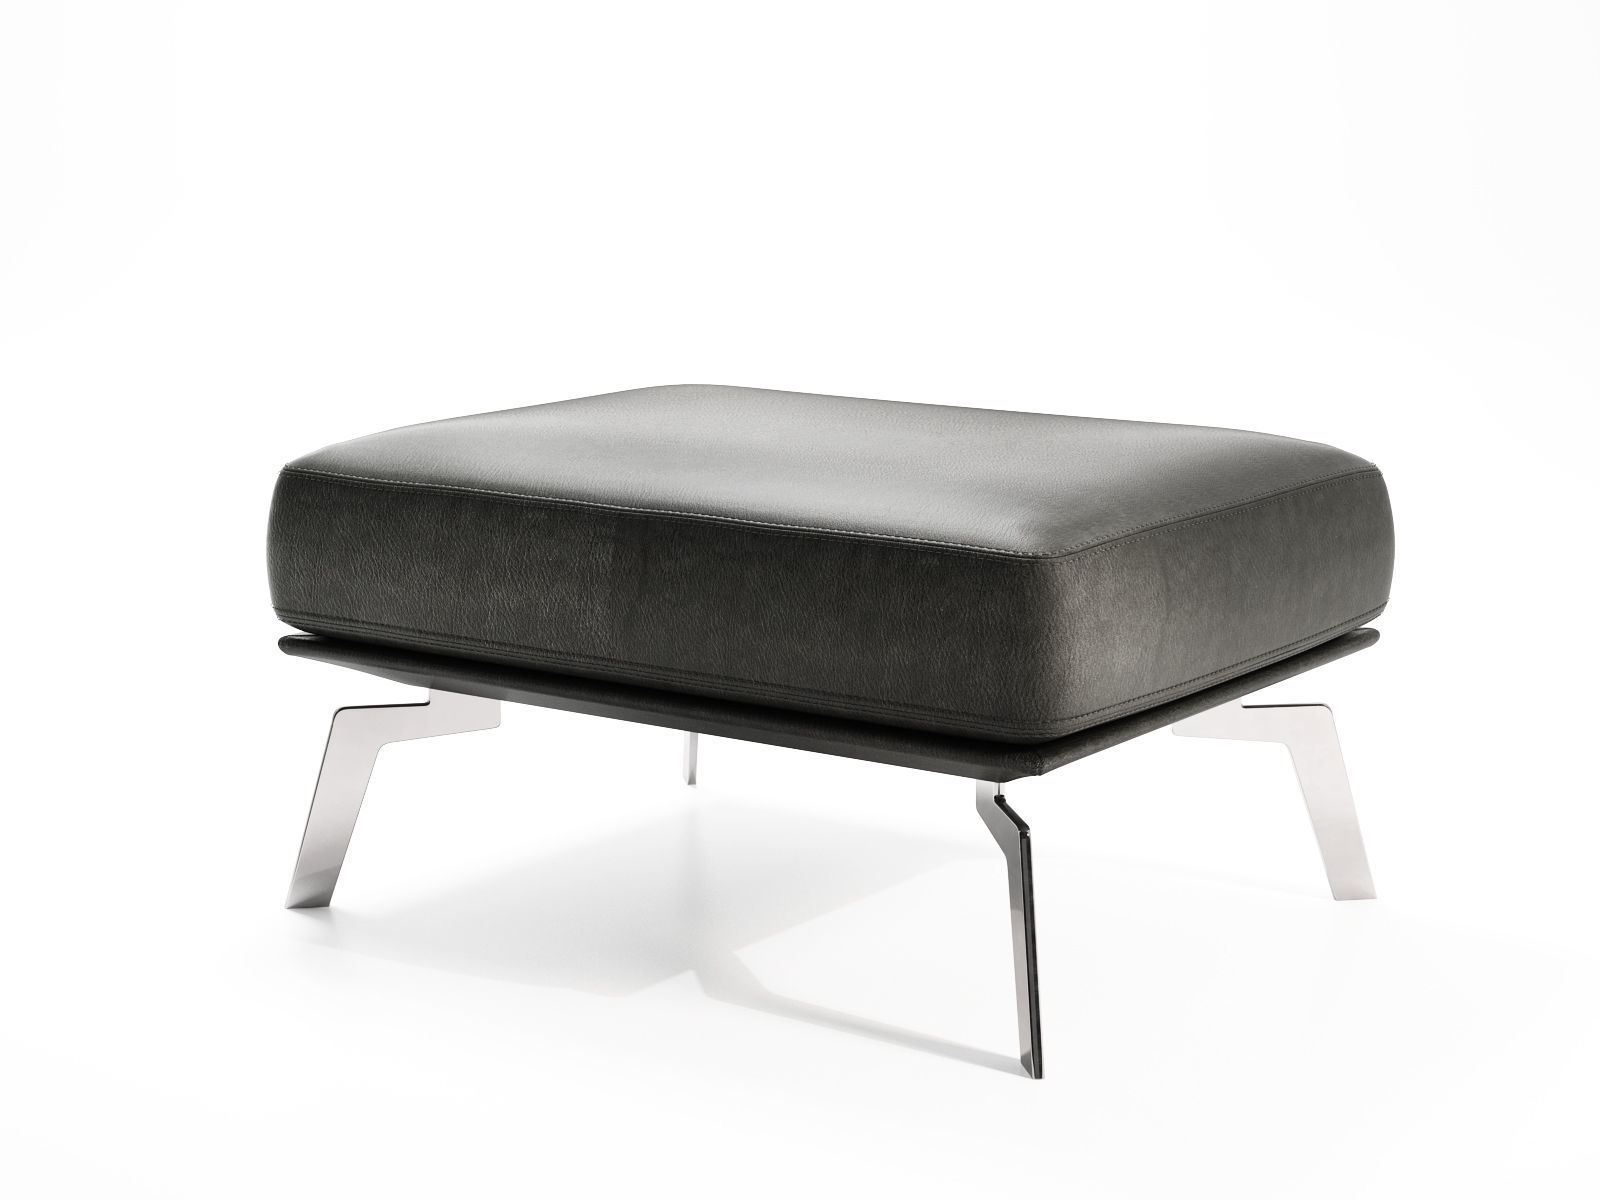 DS 87 05 15 Footstools